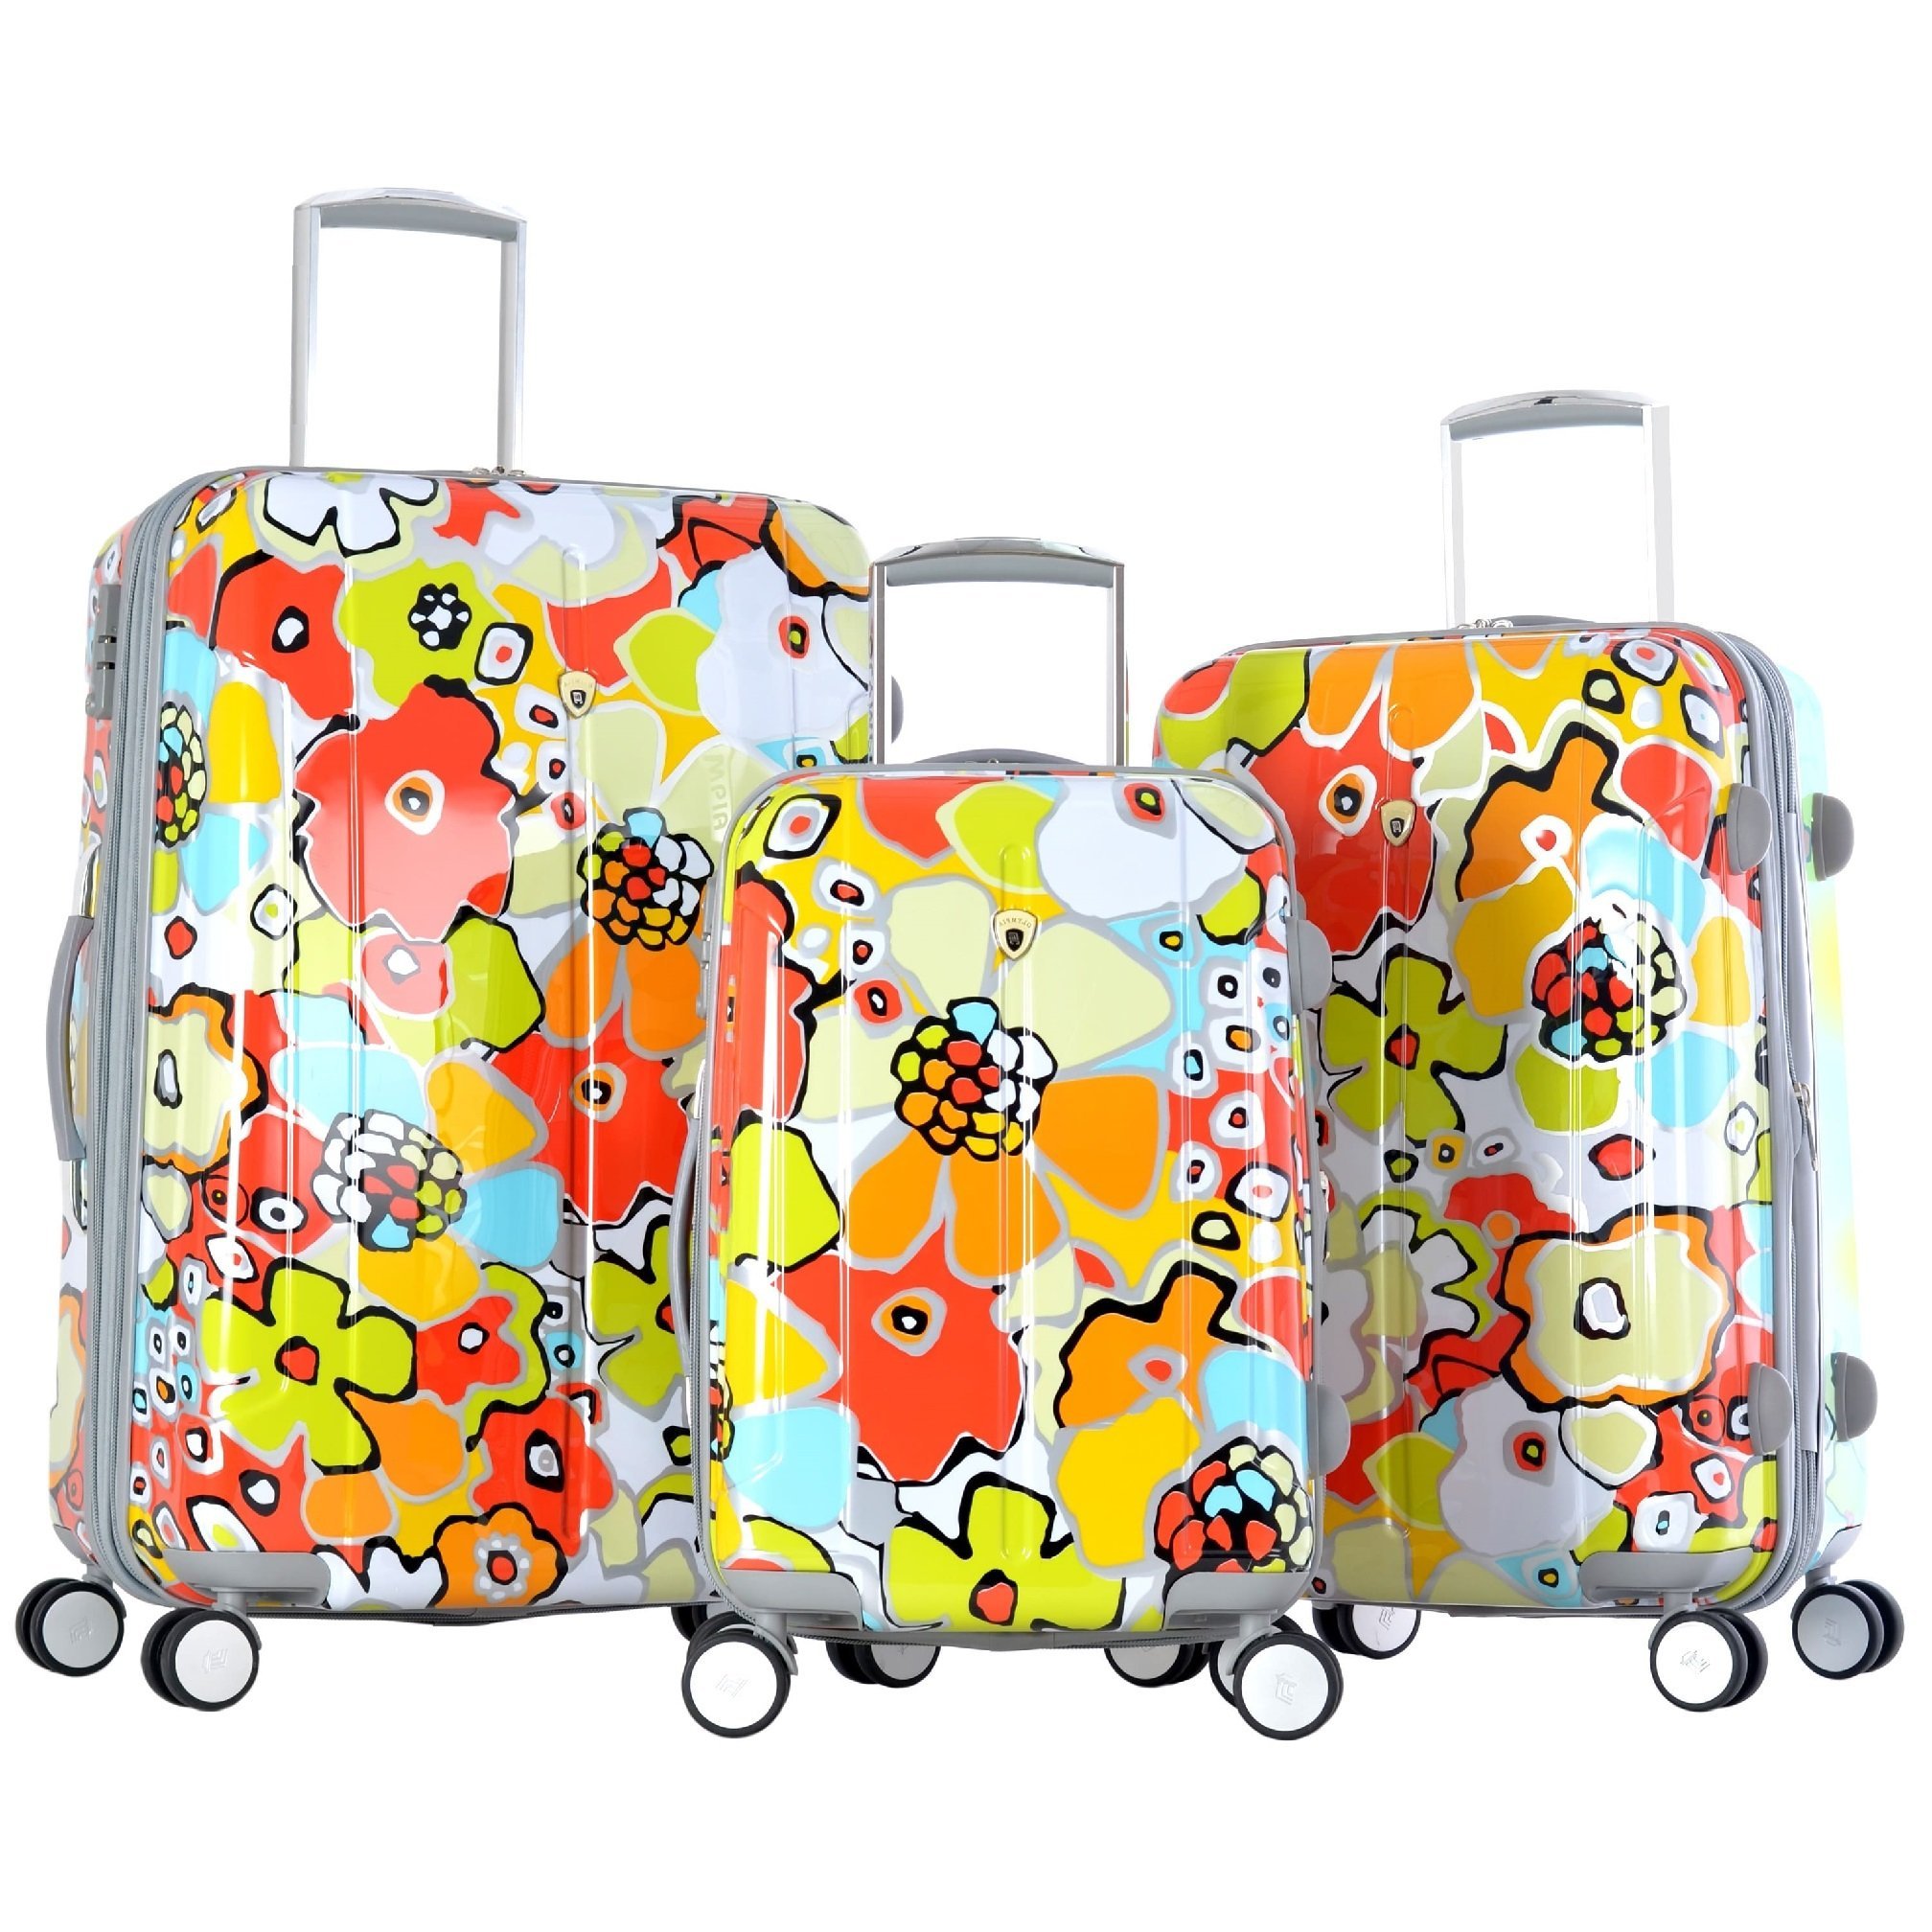 3 Piece Bright Tropical Flowers Pattern Rolling Lightweight Expandable Carry On Luggage Set, Vibrant Garden Floral Design, Hardside, Fashionable, Multi Compartment, Hard Travel Suitcases, Multicolor by S & E